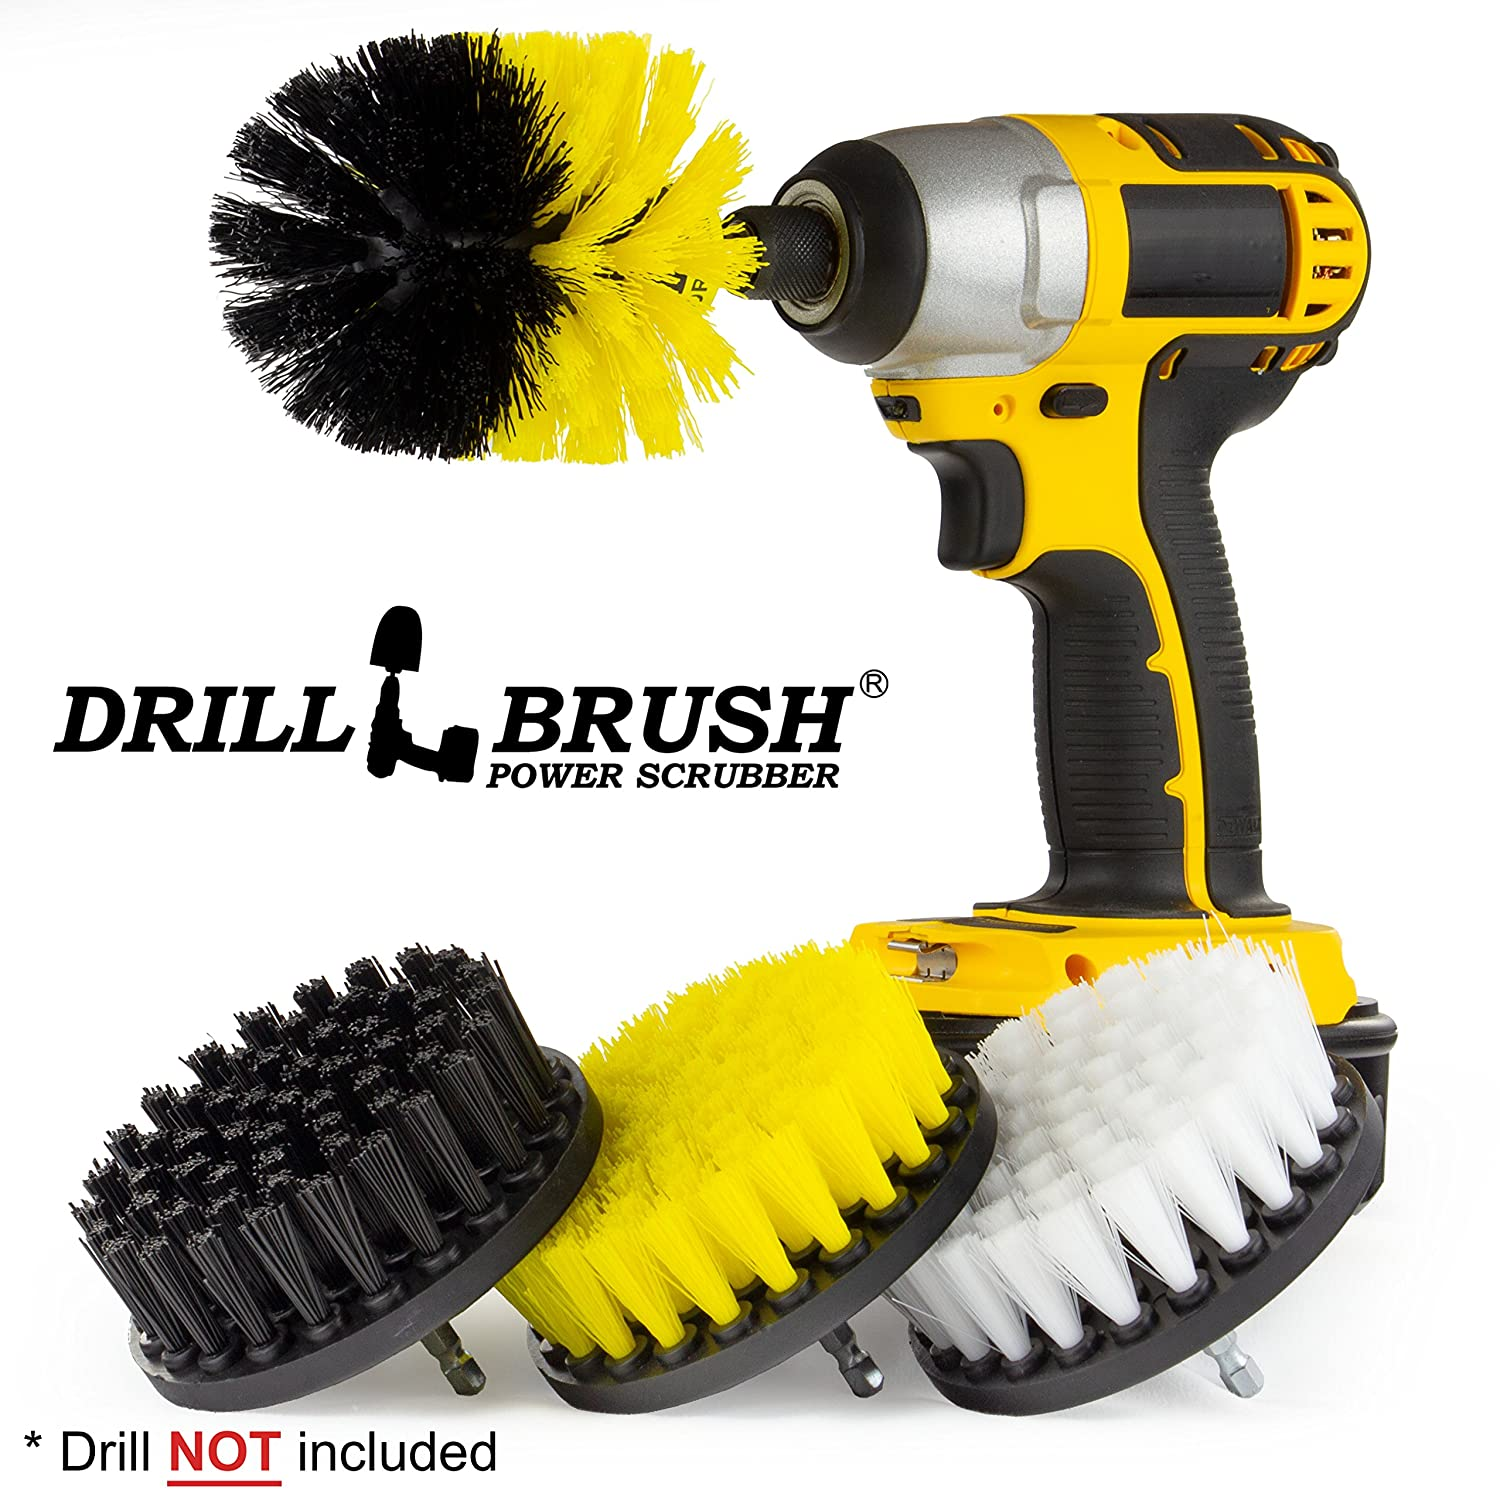 Drill Brush Grill Cleaner/Shower Scrubber/Grout Cleaner/Power Scrubber Brush/Bathroom Tile/Car Seat Cleaner/Carpet Brush/BBQ Cleaner/Tile Brush/Boat Cleaning/Griddle Cleaner